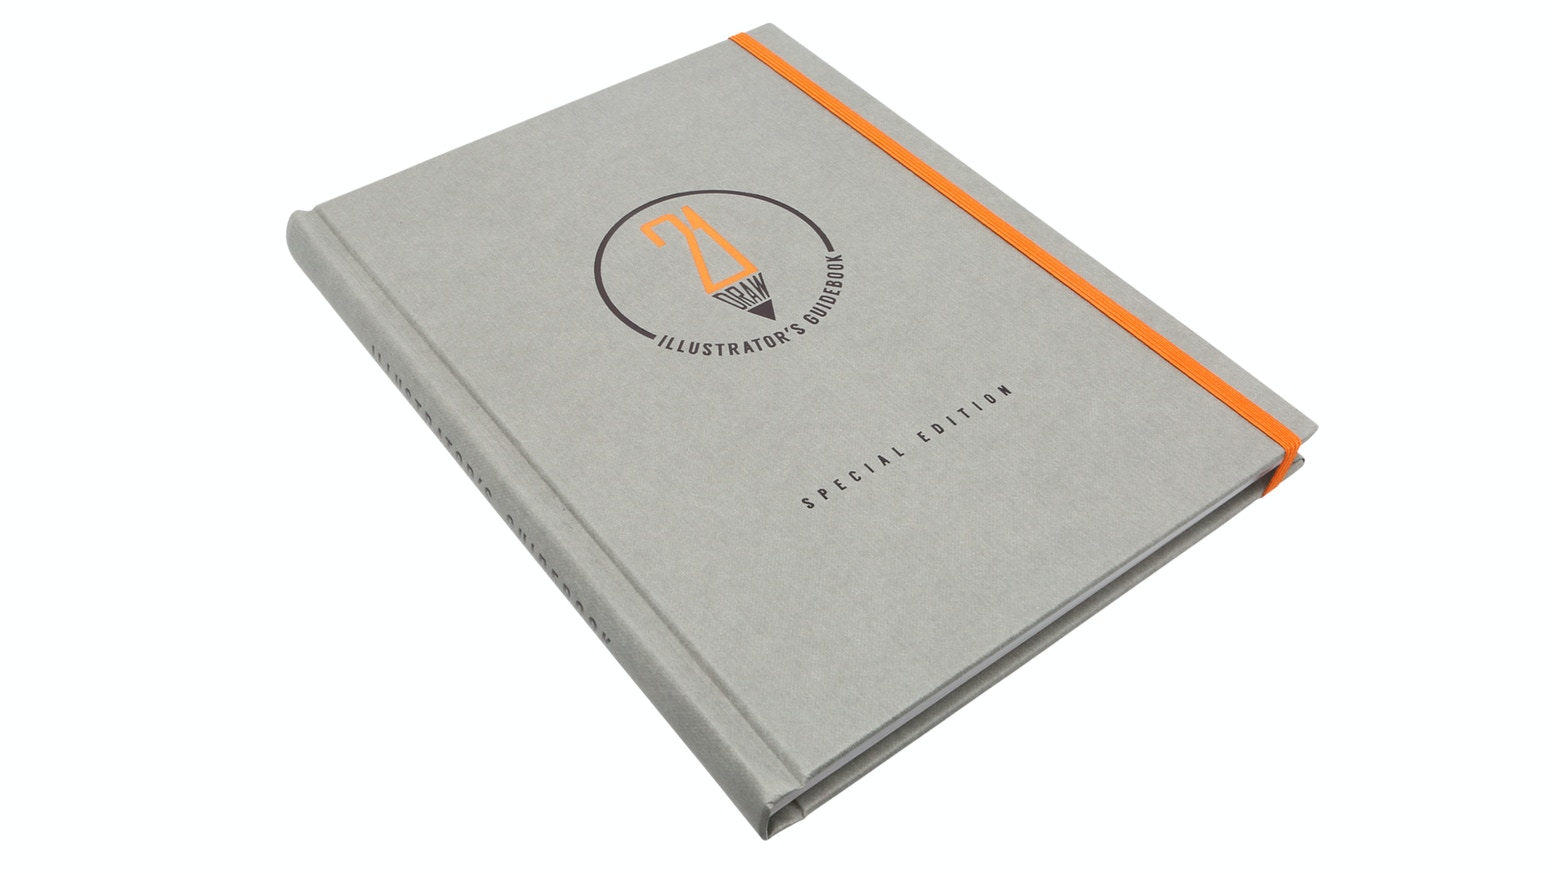 REPRINT of our 2nd art book with lessons by industry legends who have worked for Disney, Marvel, DC, Dreamworks, Pixar & more.